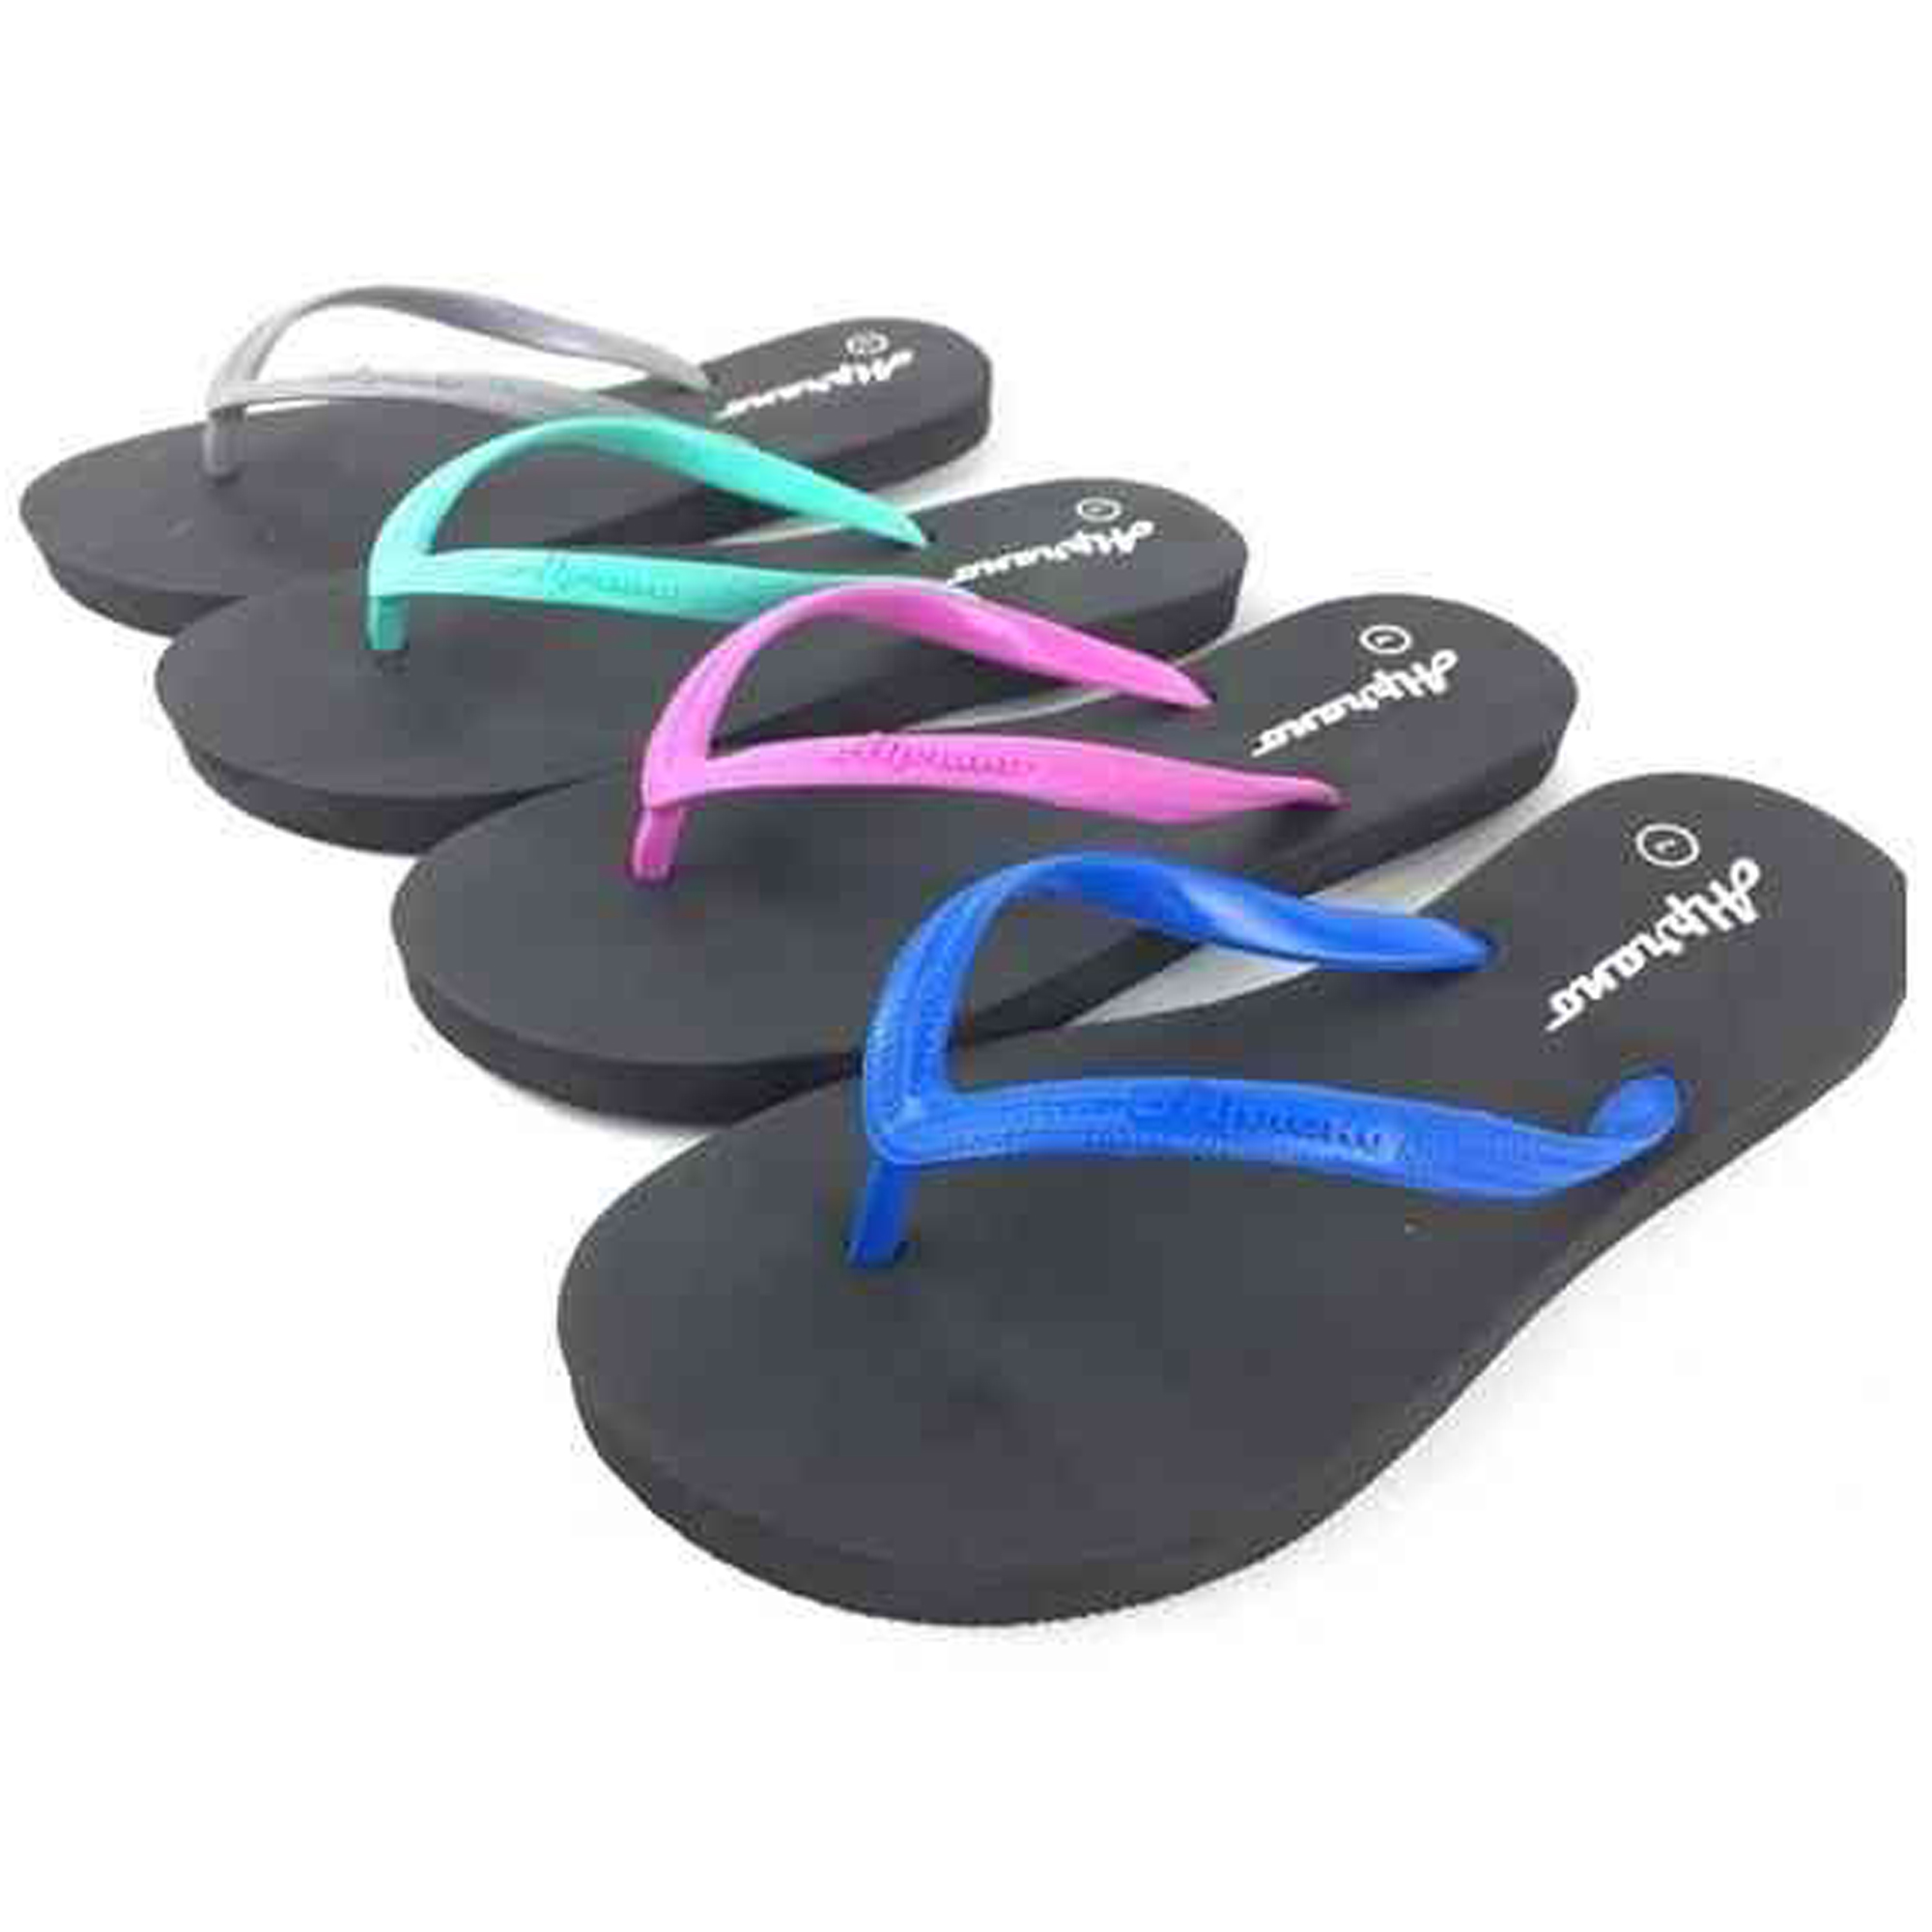 JN-APL 07 (UK8) Alprano Slipper